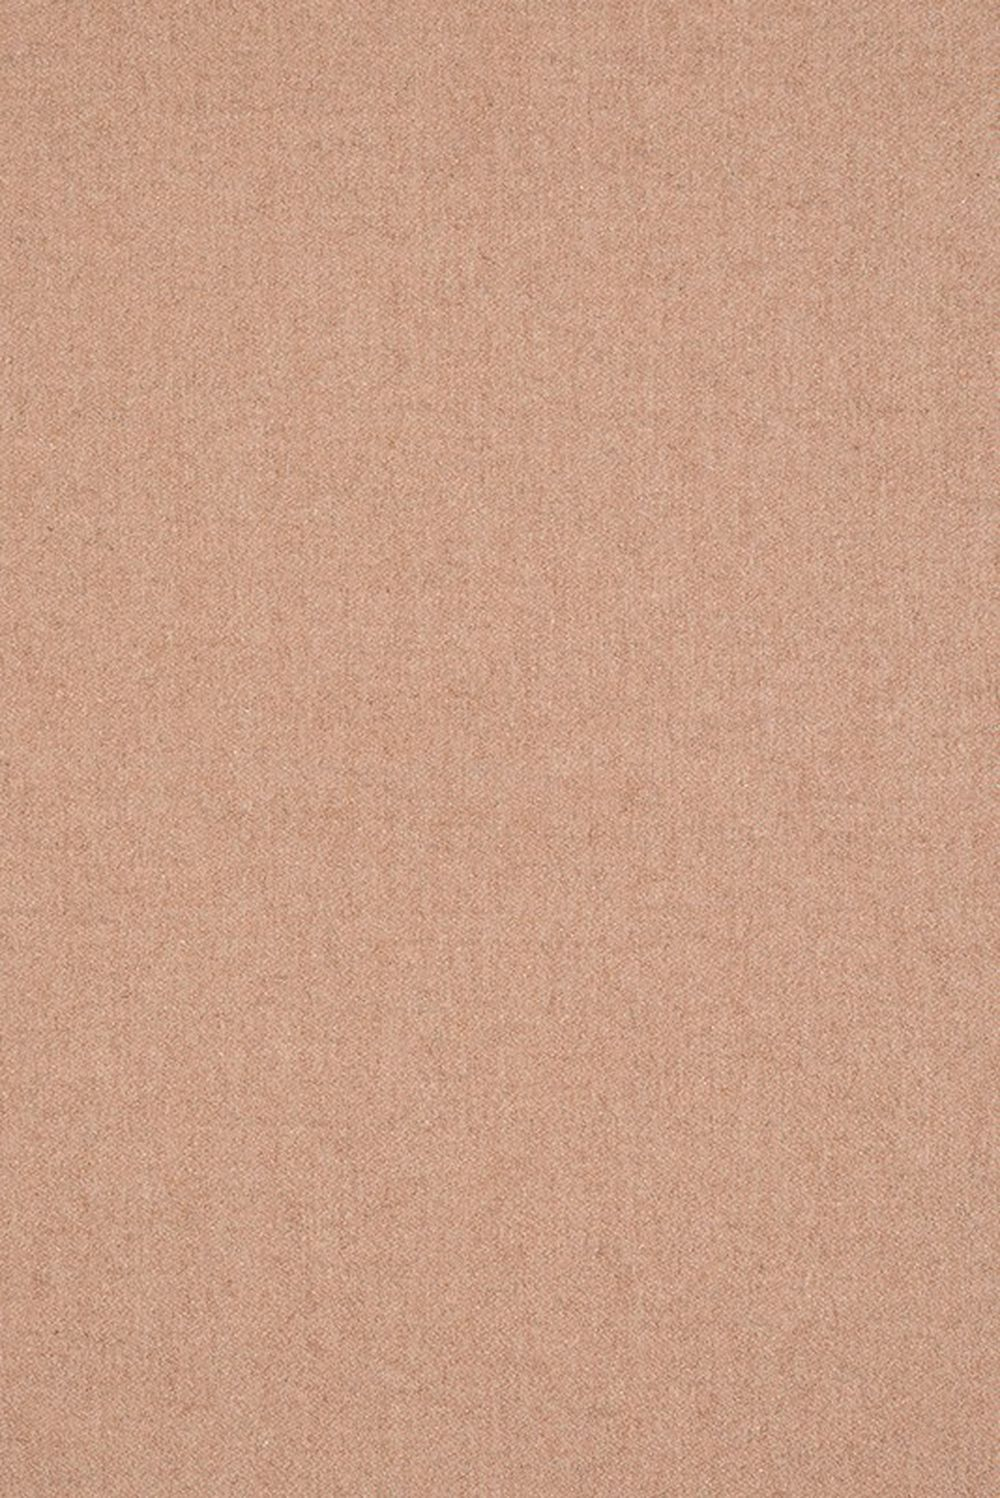 Photo of the fabric Prato Peach swatch by Mokum. Use for Upholstery Heavy Duty, Accessory. Style of Plain, Texture